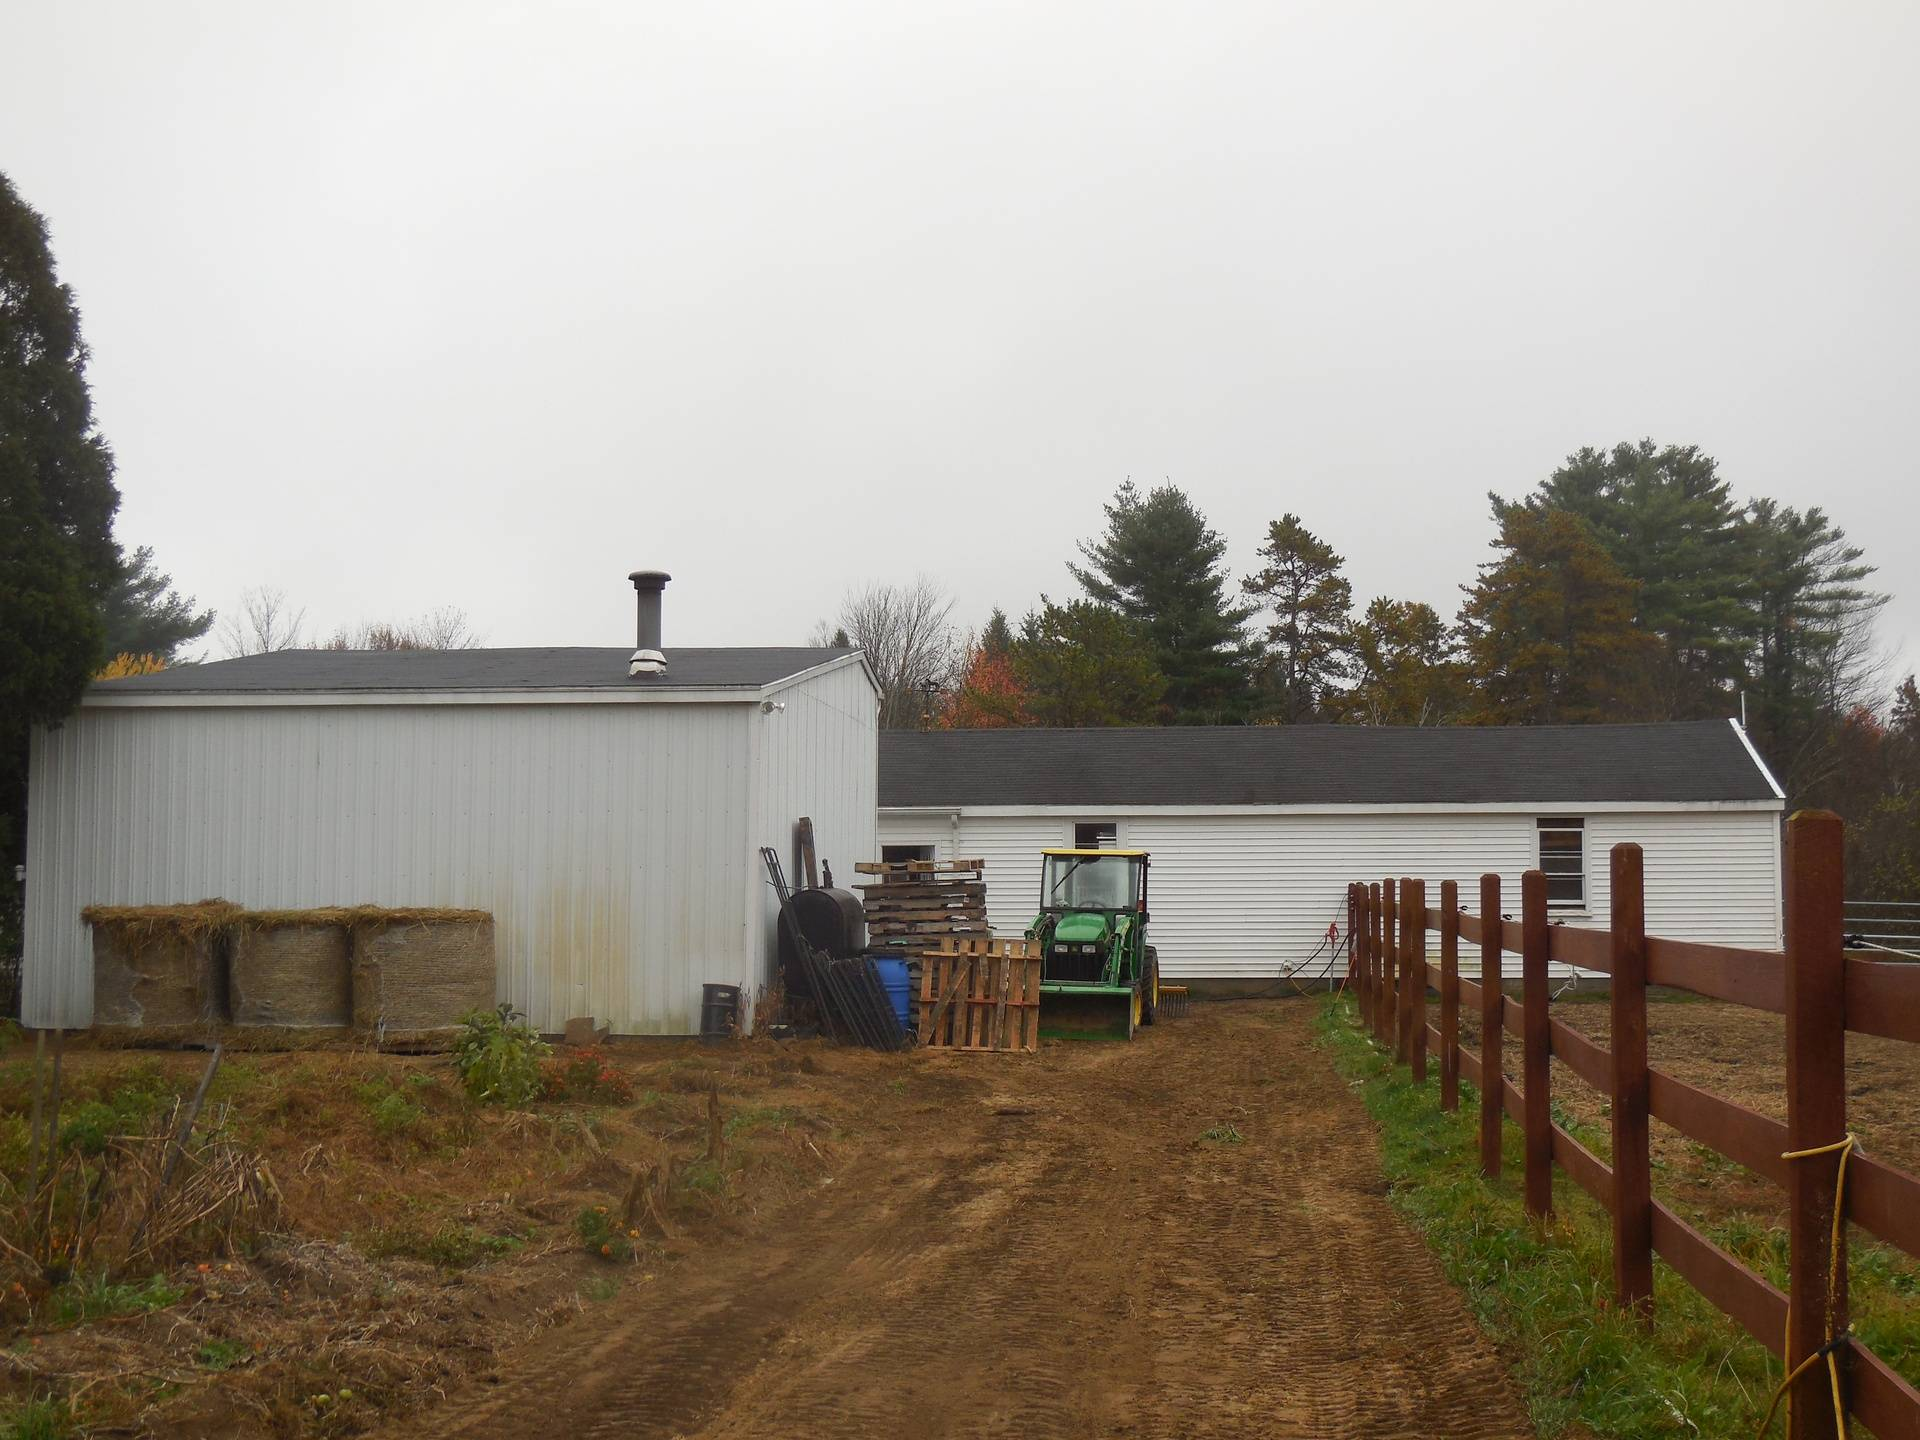 Field O' Dreams Farm, 481 Boston Post Road, Amherst, New Hampshire, 03031, Hillsborough